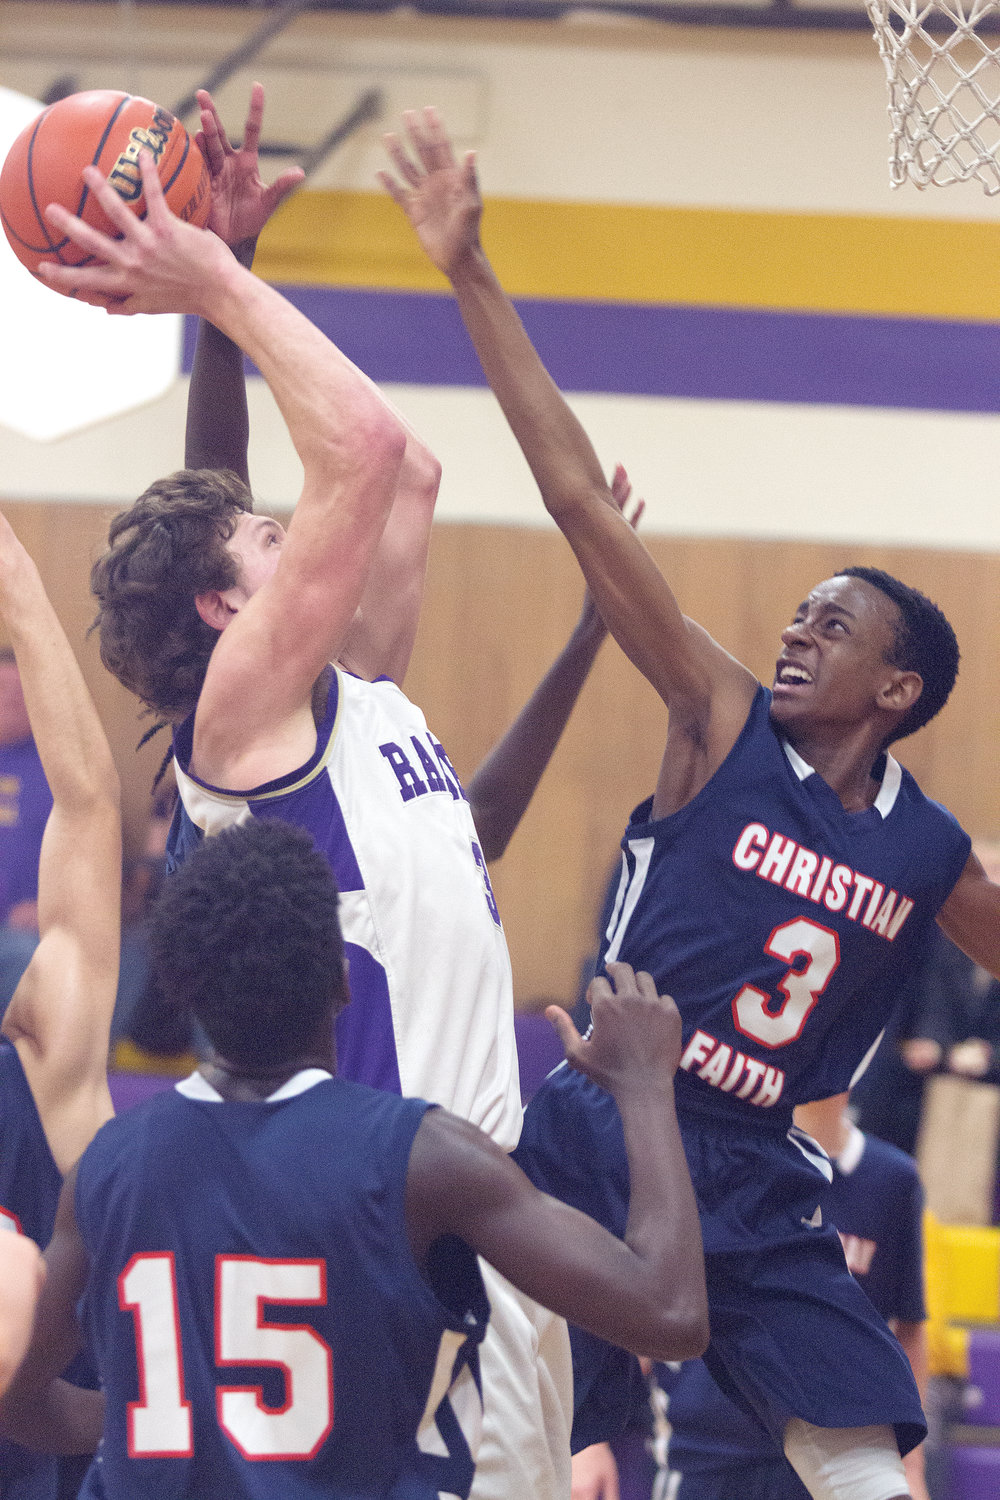 Rangers senior center Robert Comstock III goes up for a shot between Christian Faith defenders Jaylen Kimani (15) and Deshawn Kimani (3) on Jan. 30 at Quilcene High School.